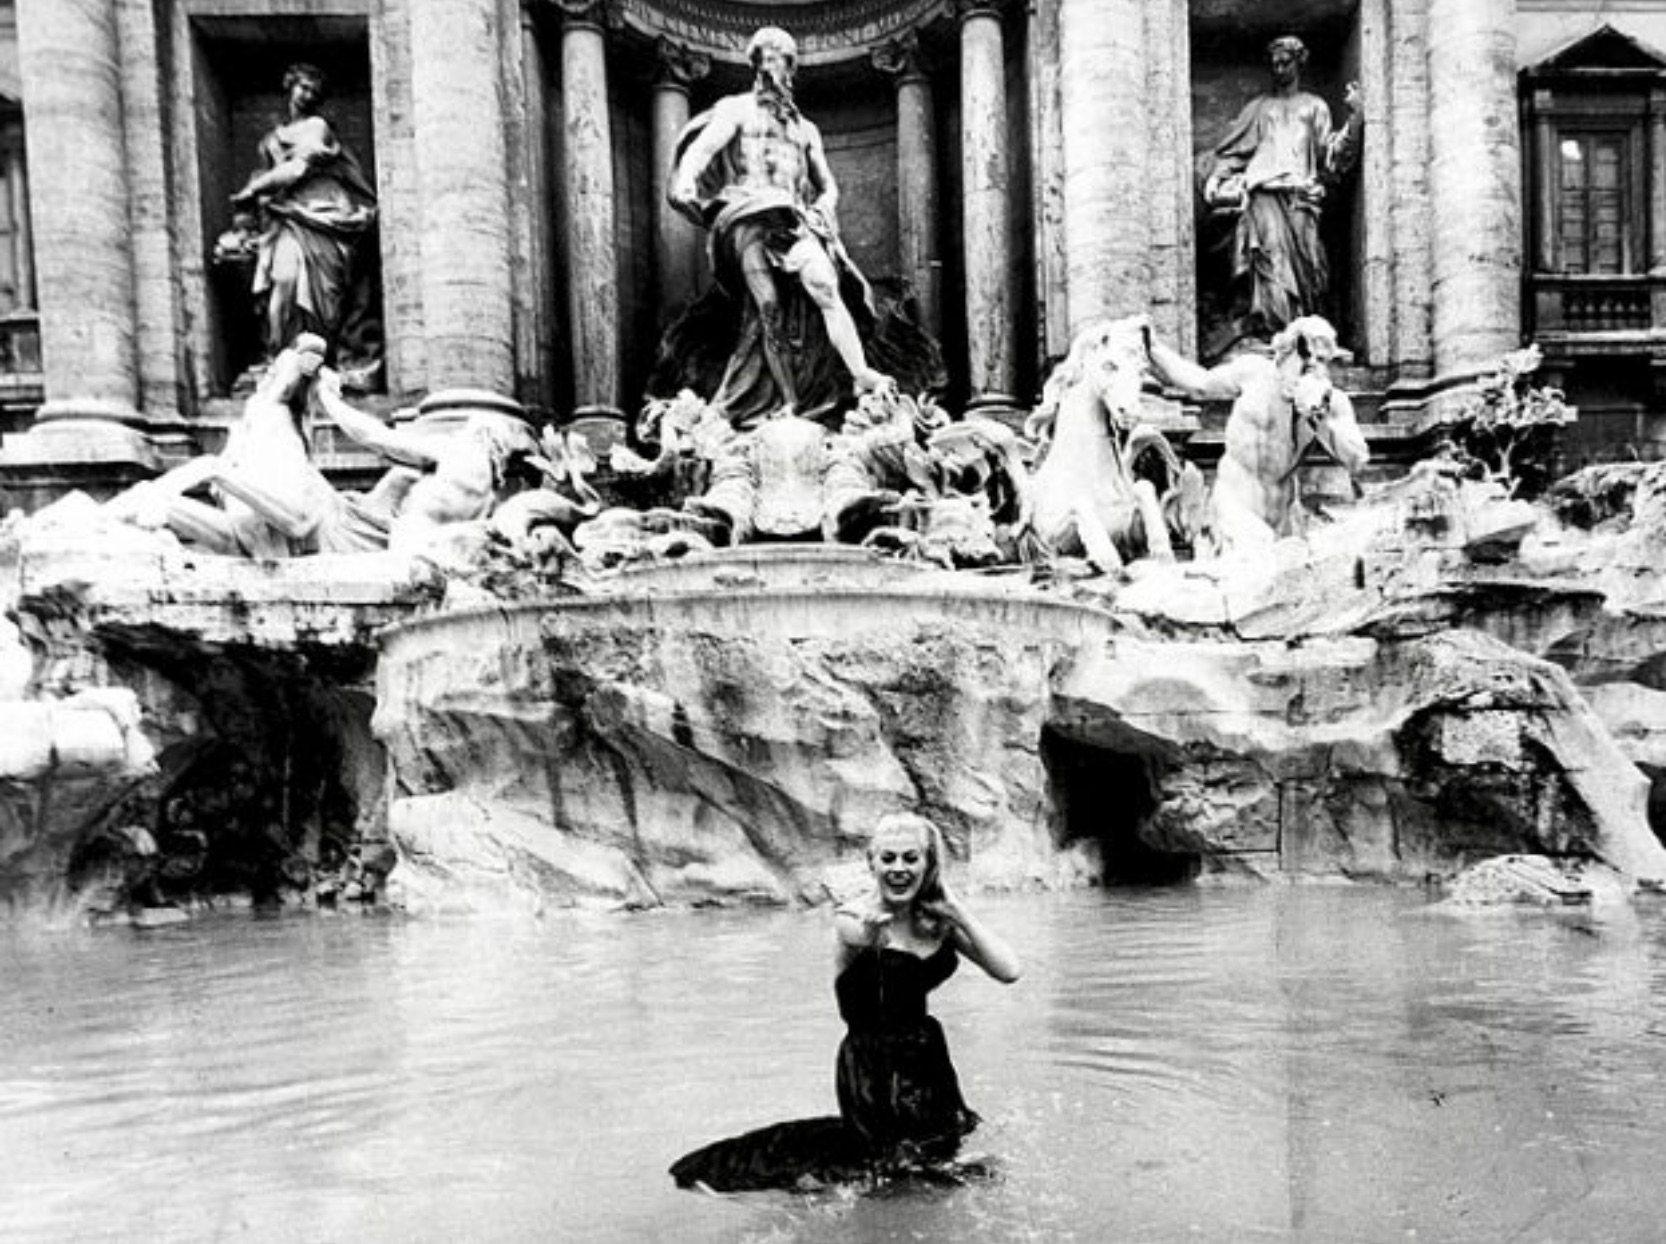 Rome and the Catholic Church fighting over change tossed into the Trevi Fountain